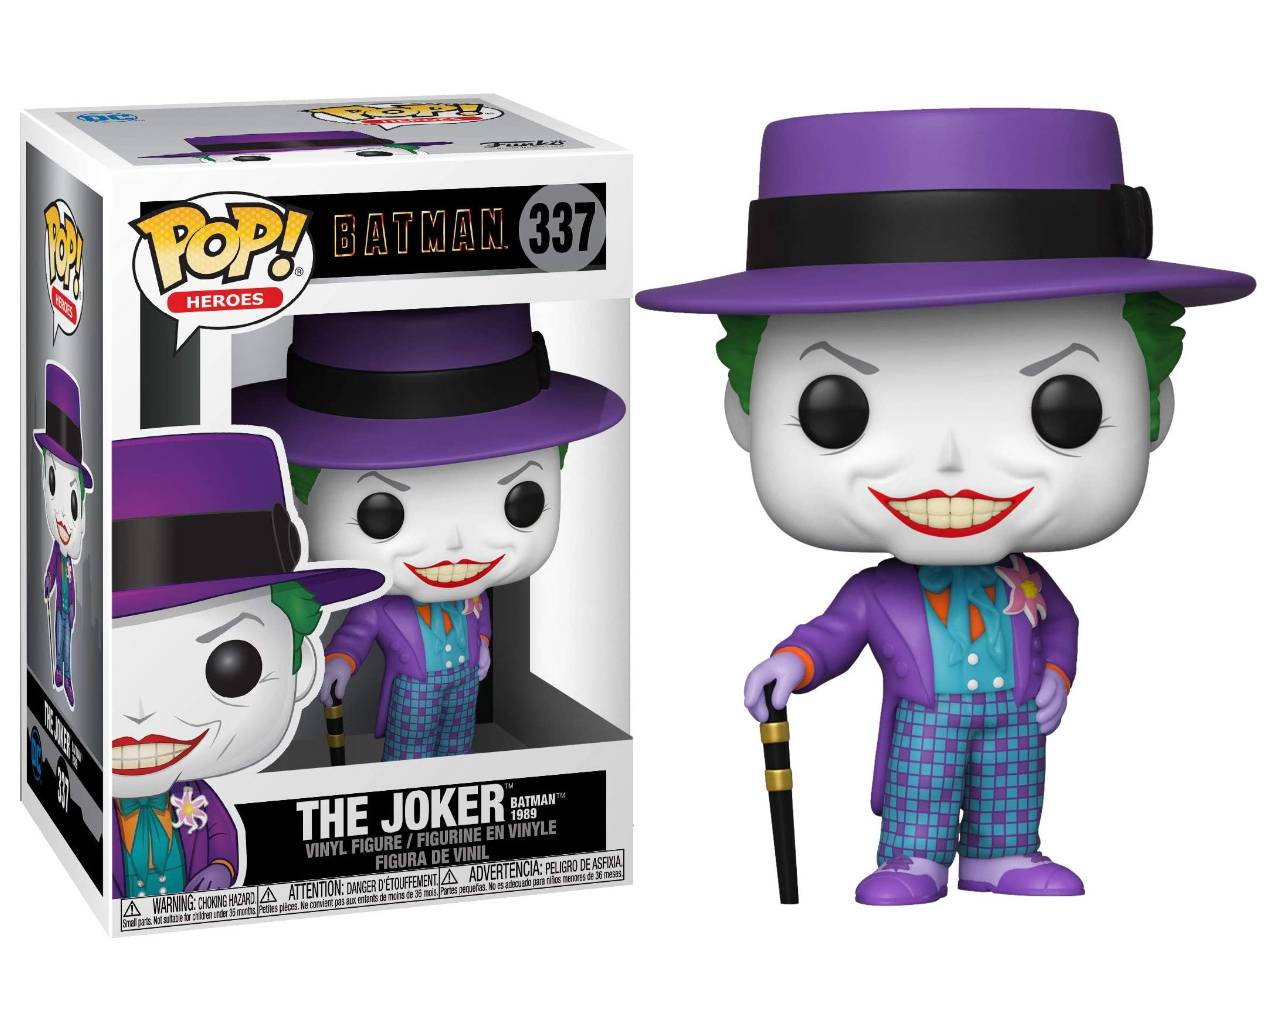 The Joker (Batman 1989) Pop! Vinyl